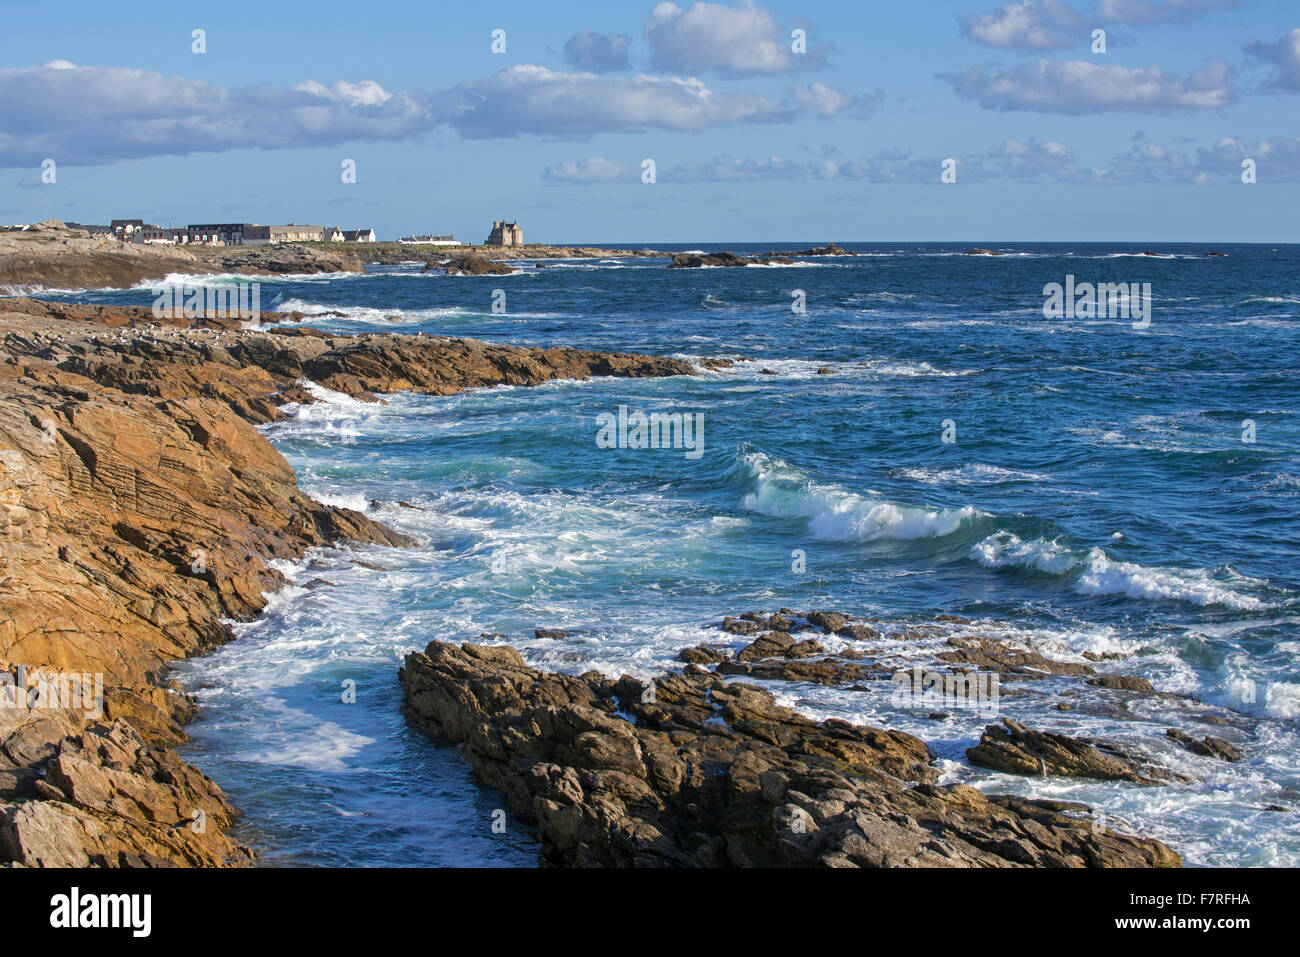 Coastline of the Côte Sauvage and château Turpault at Quiberon, Morbihan, Brittany, France - Stock Image